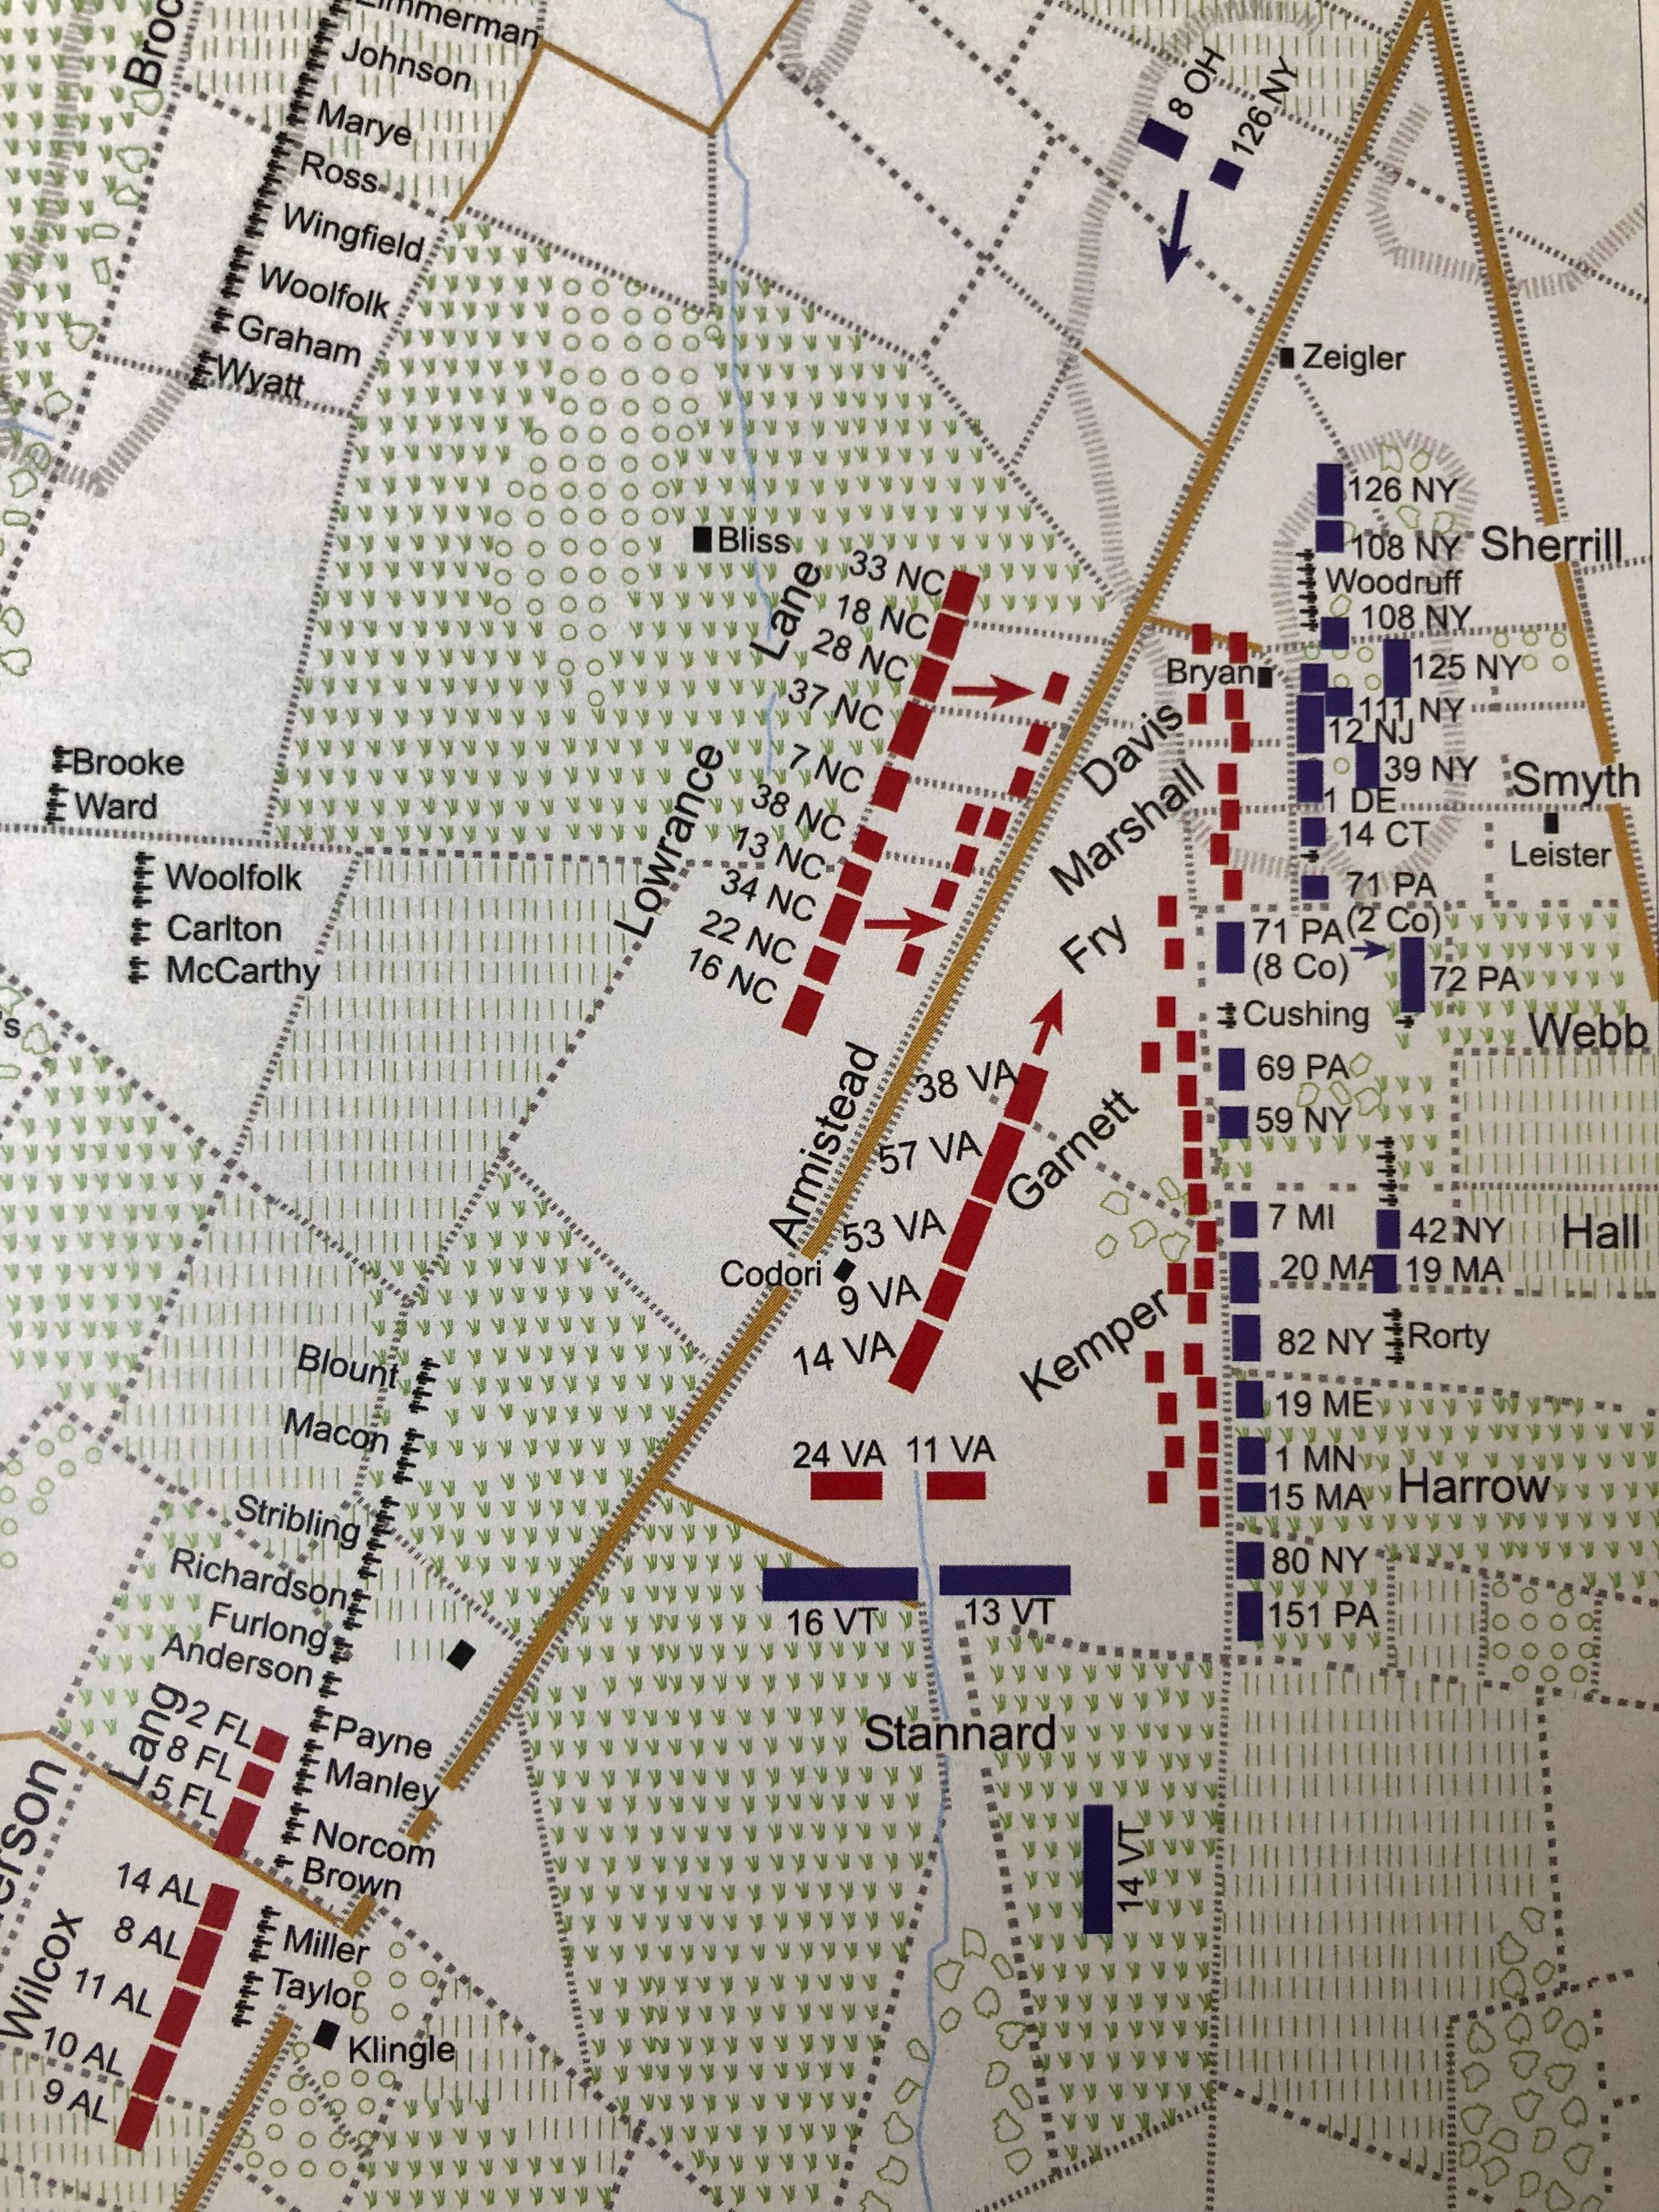 Image available in Bradley M. Gottfried,   The Maps of Gettysburg: An Atlas of the Gettysburg Campaign, June 3- July 13, 1863   (New York: Savas Beatie, 2013), 259.